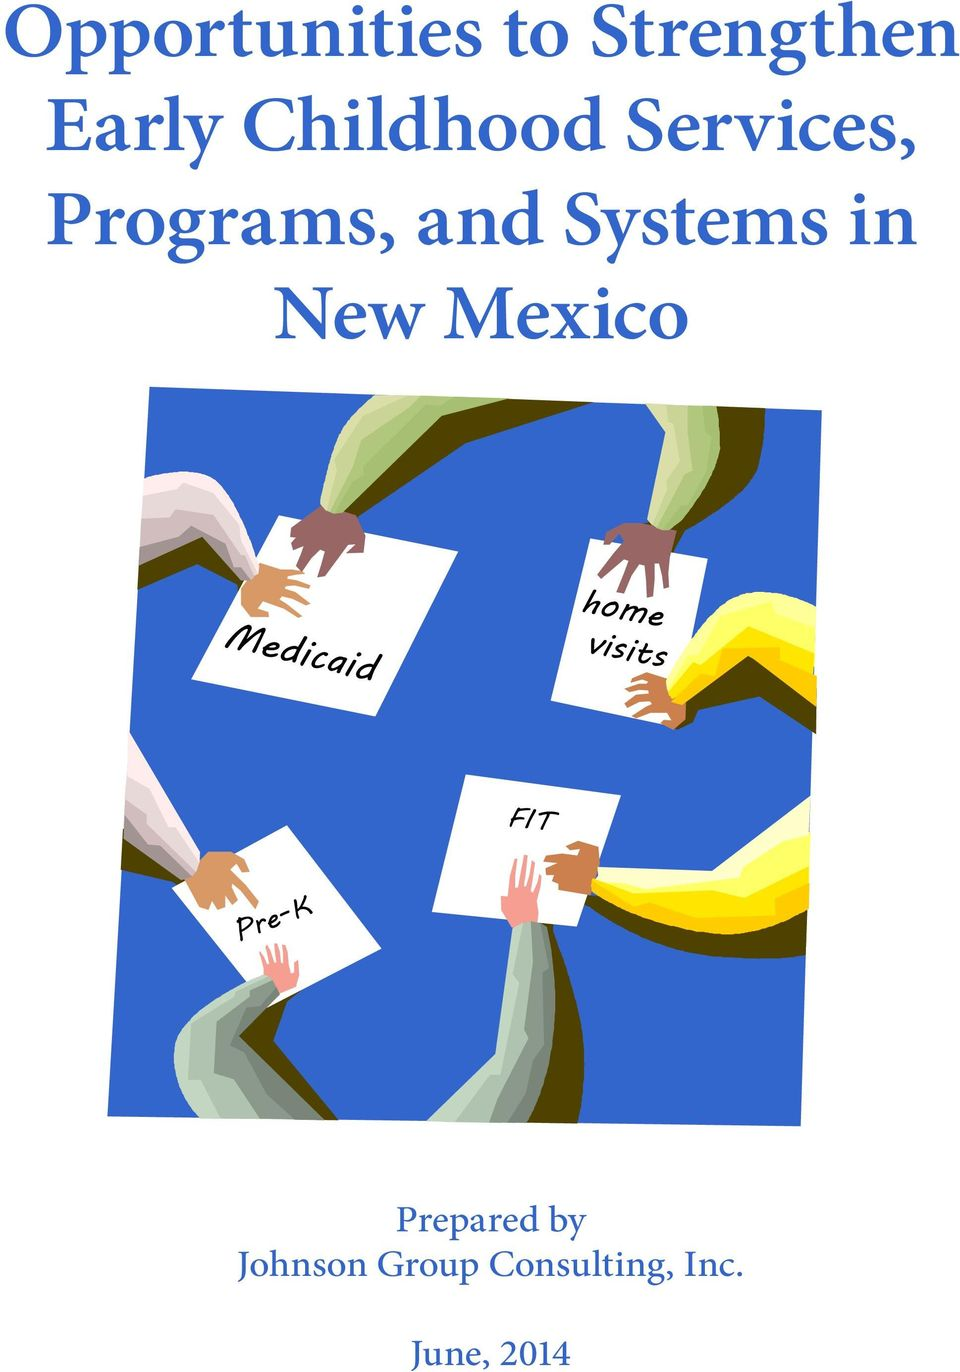 Mexico Medicaid home visits FIT Pre-K